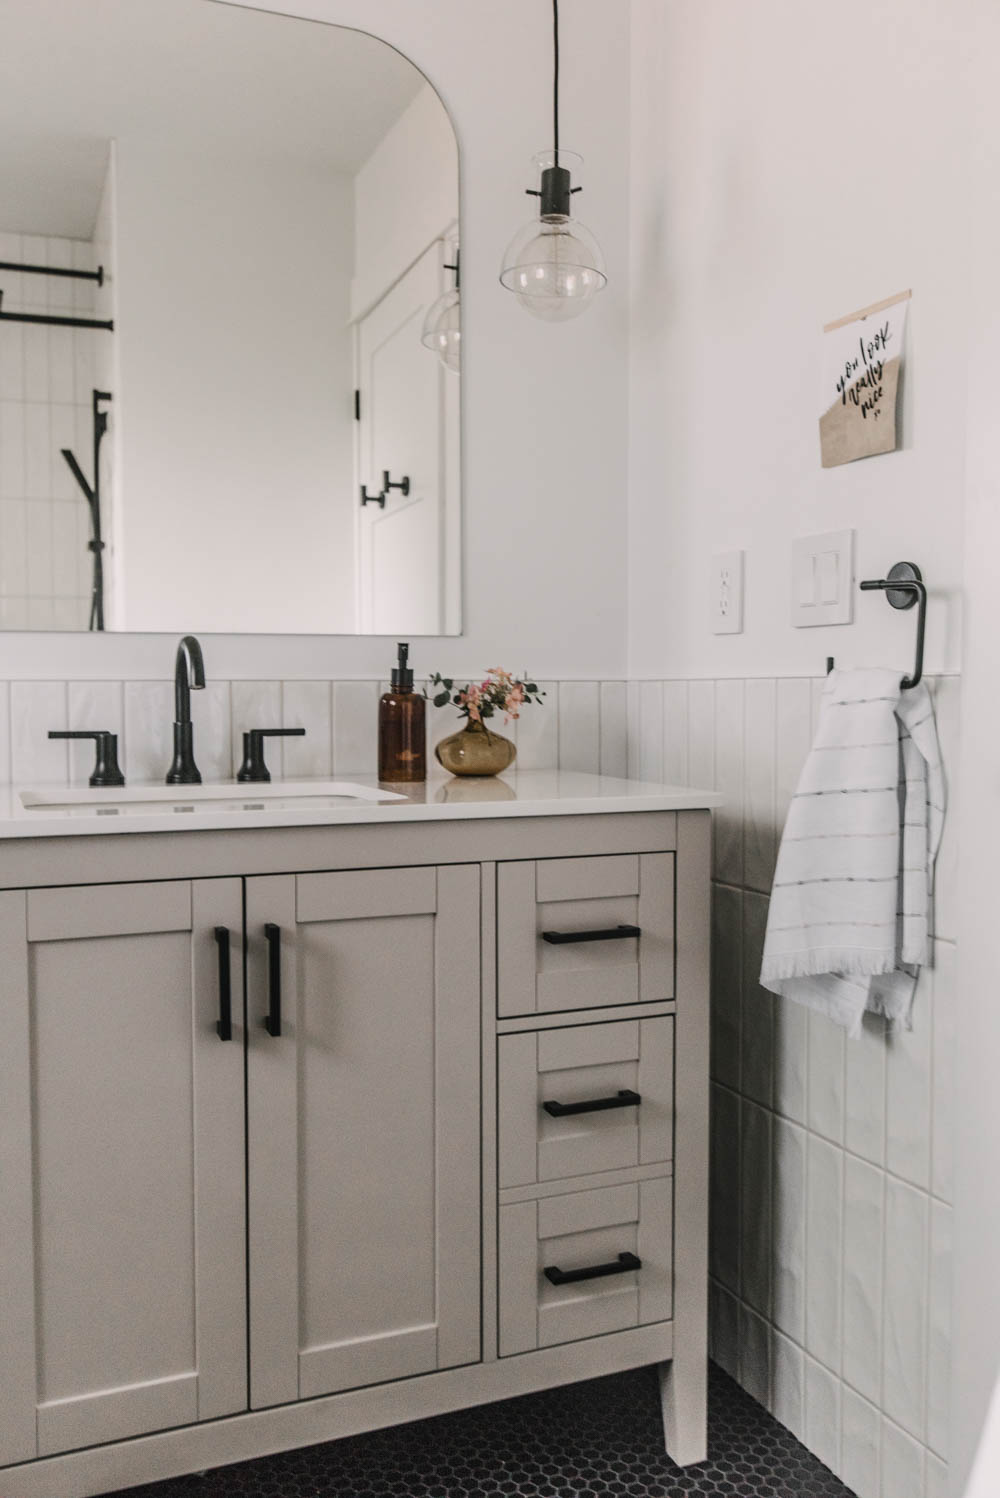 Modern details in this cozy bathroom remodel